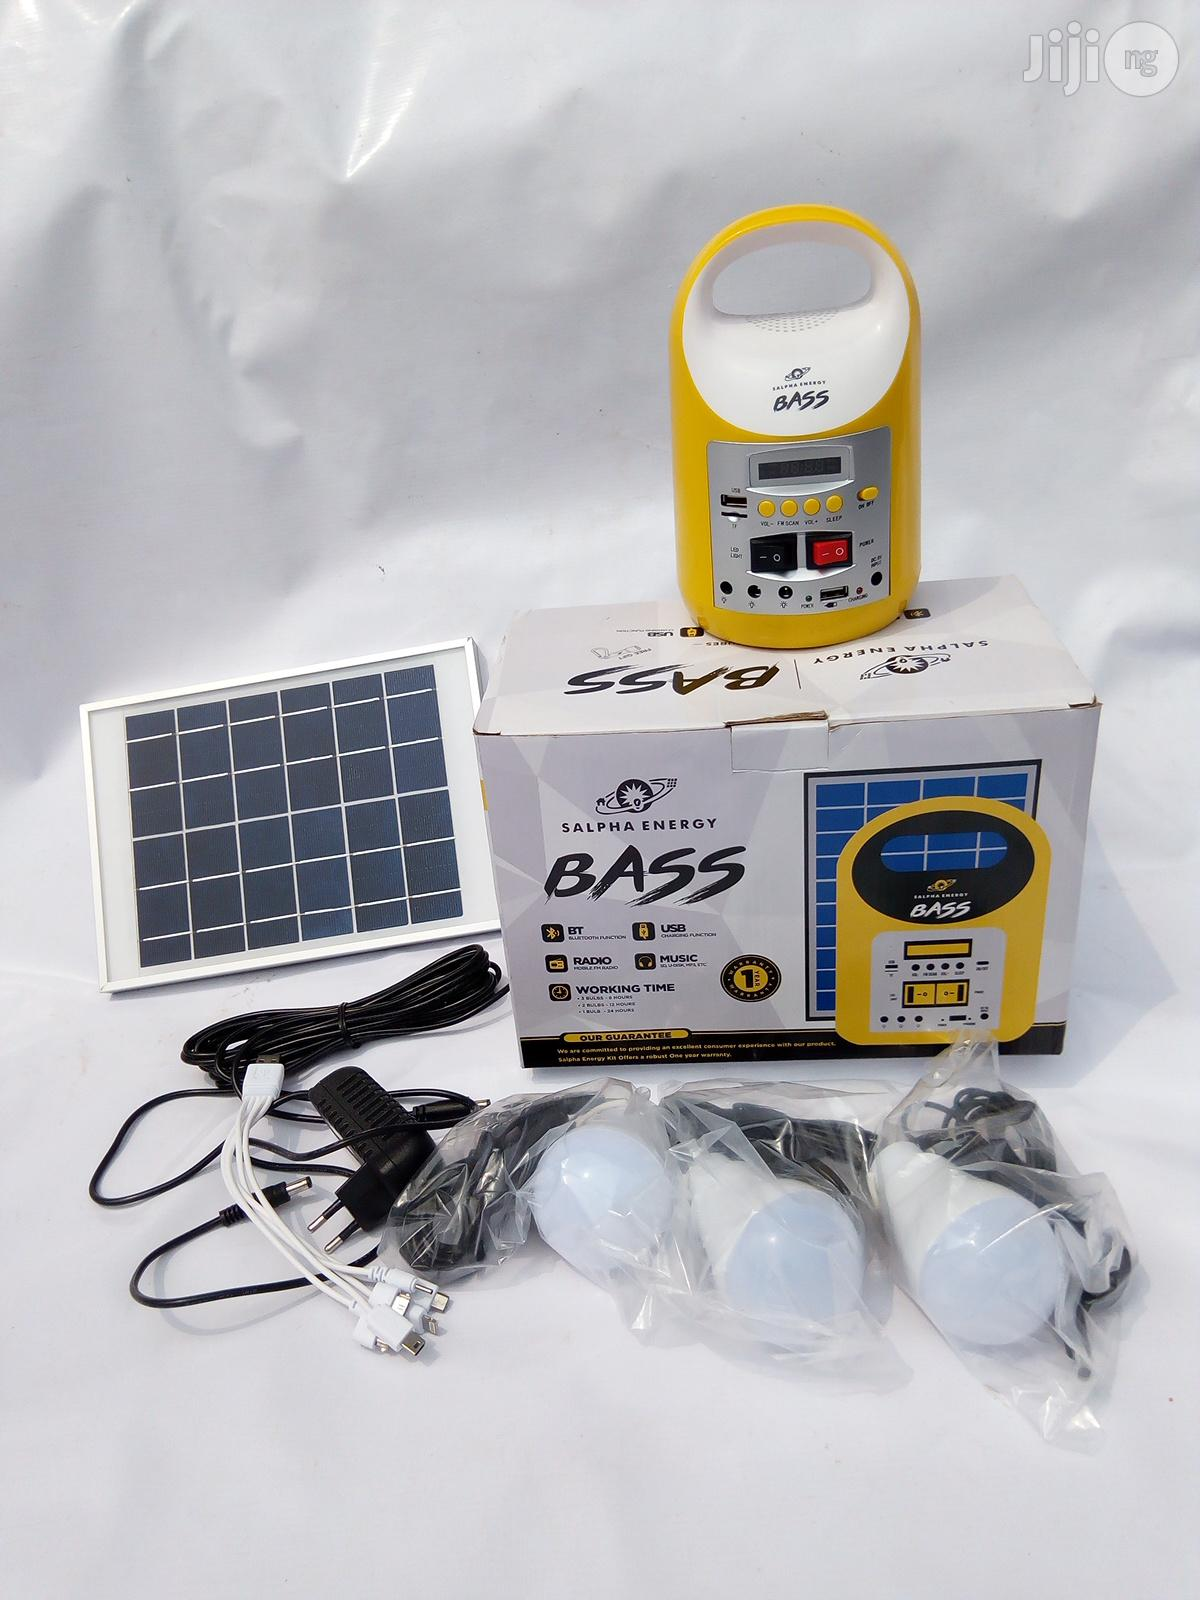 Bass Solar Kit Systems For Homes, Camping And Outdoor Use